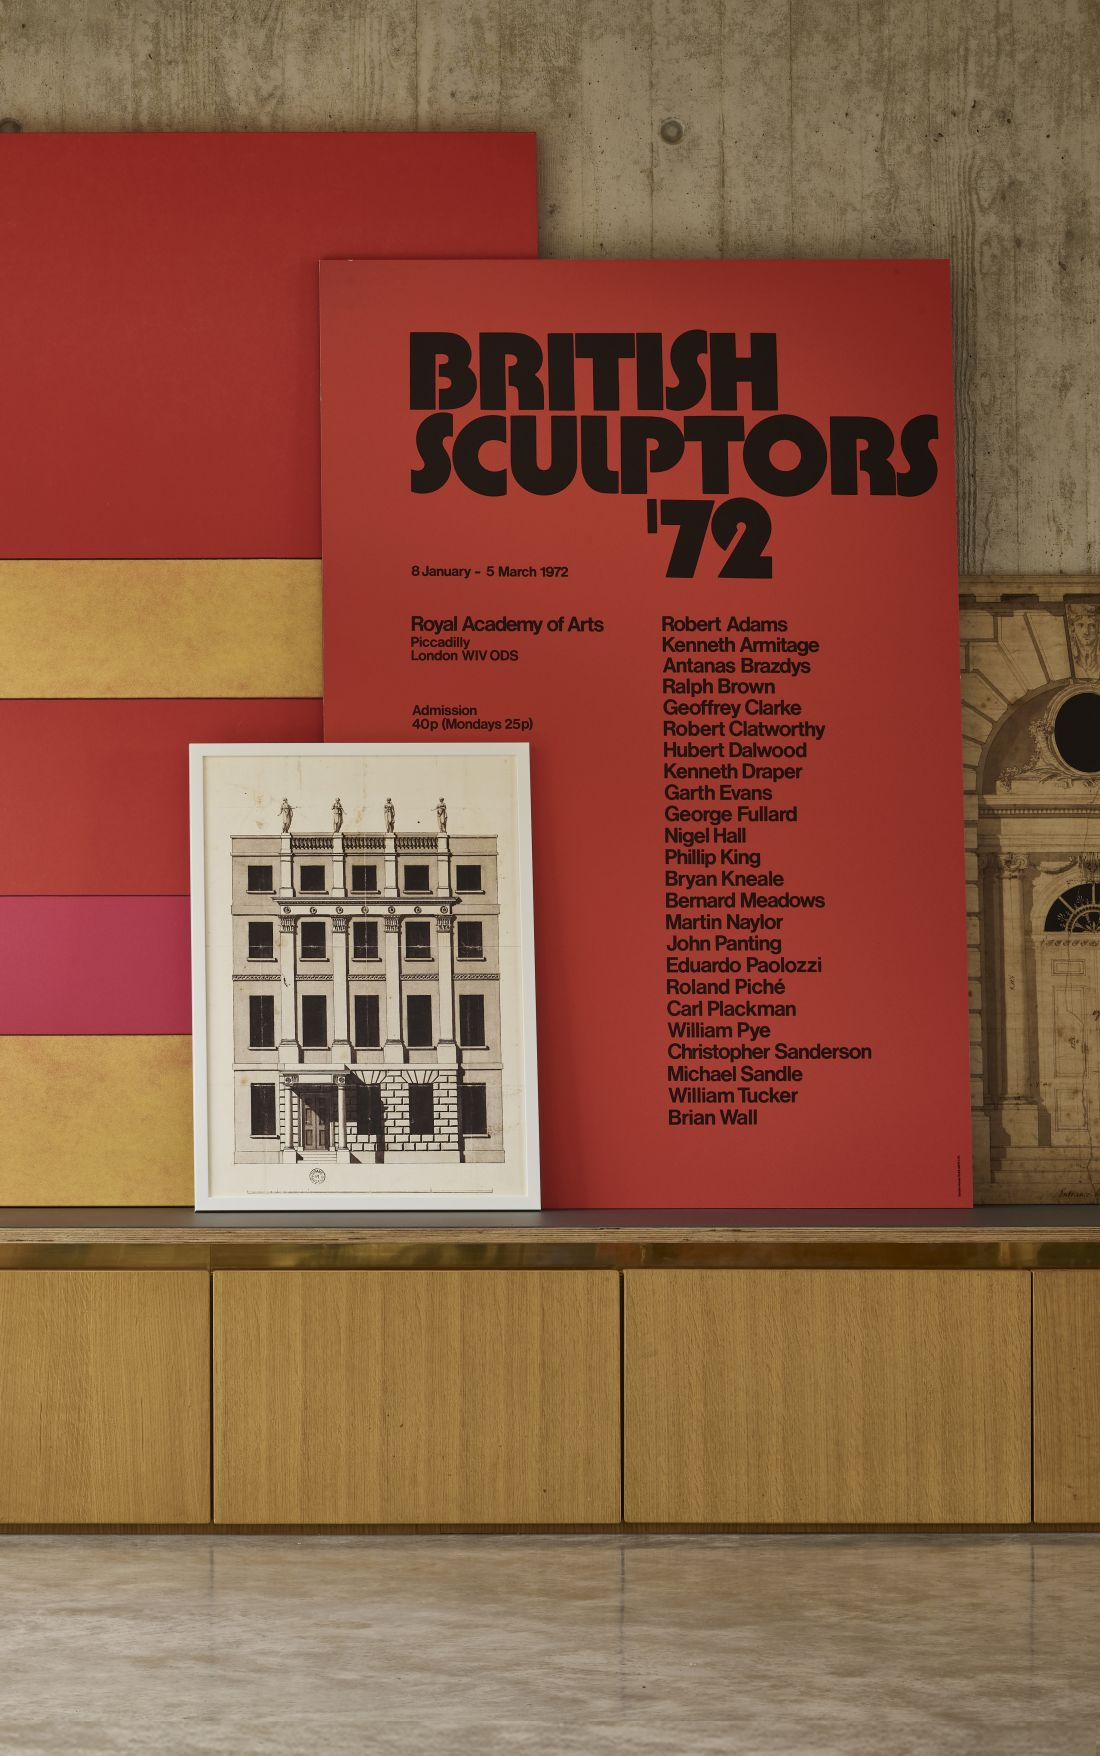 RA British Sculptors Exhibition 1972 Epic Poster​ from the Royal Academy of Arts Collection